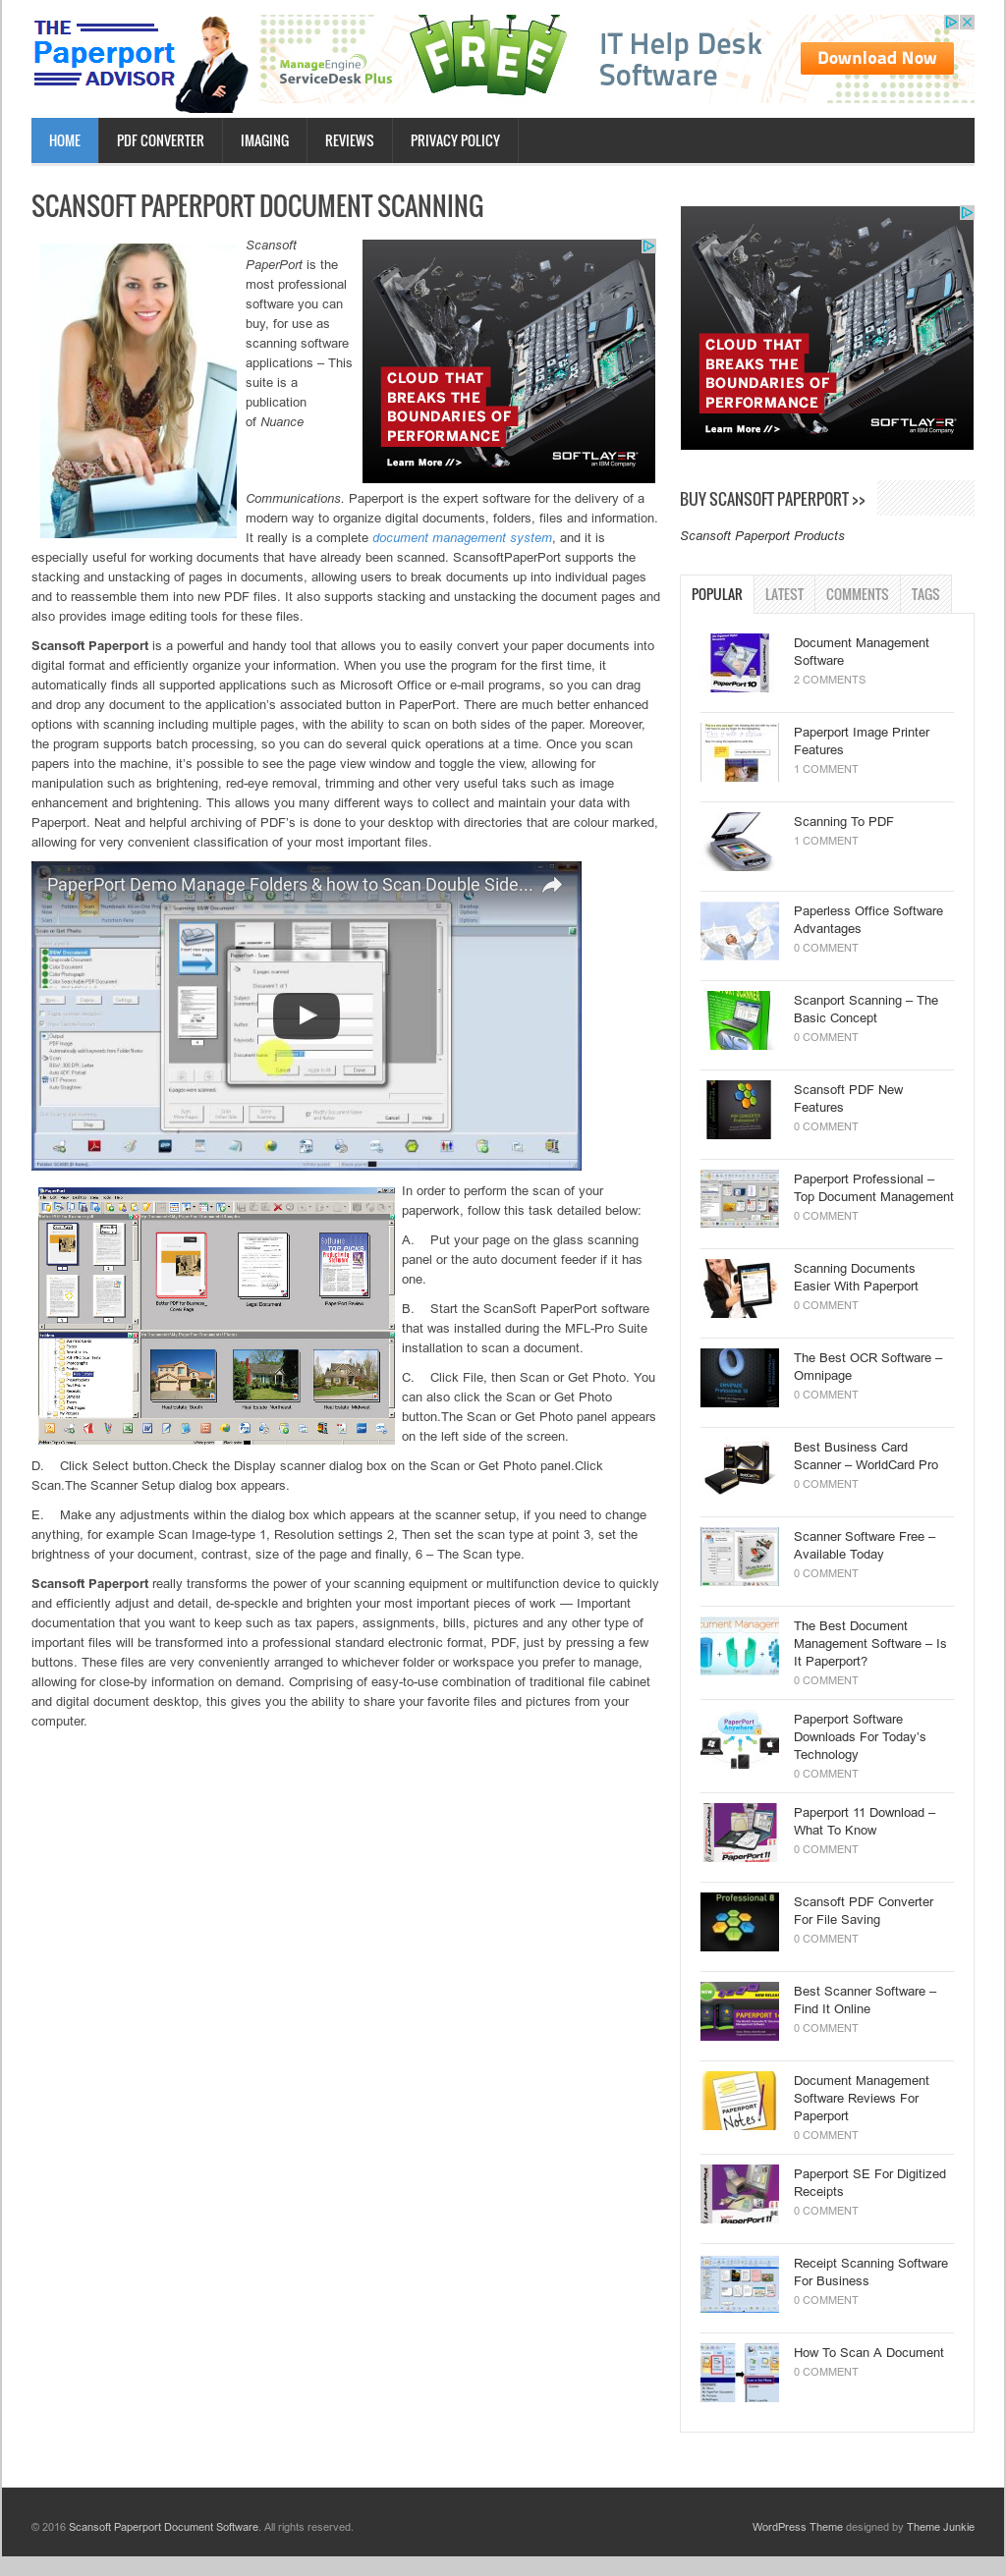 Scansoft Paperport Document Software Competitors, Revenue and